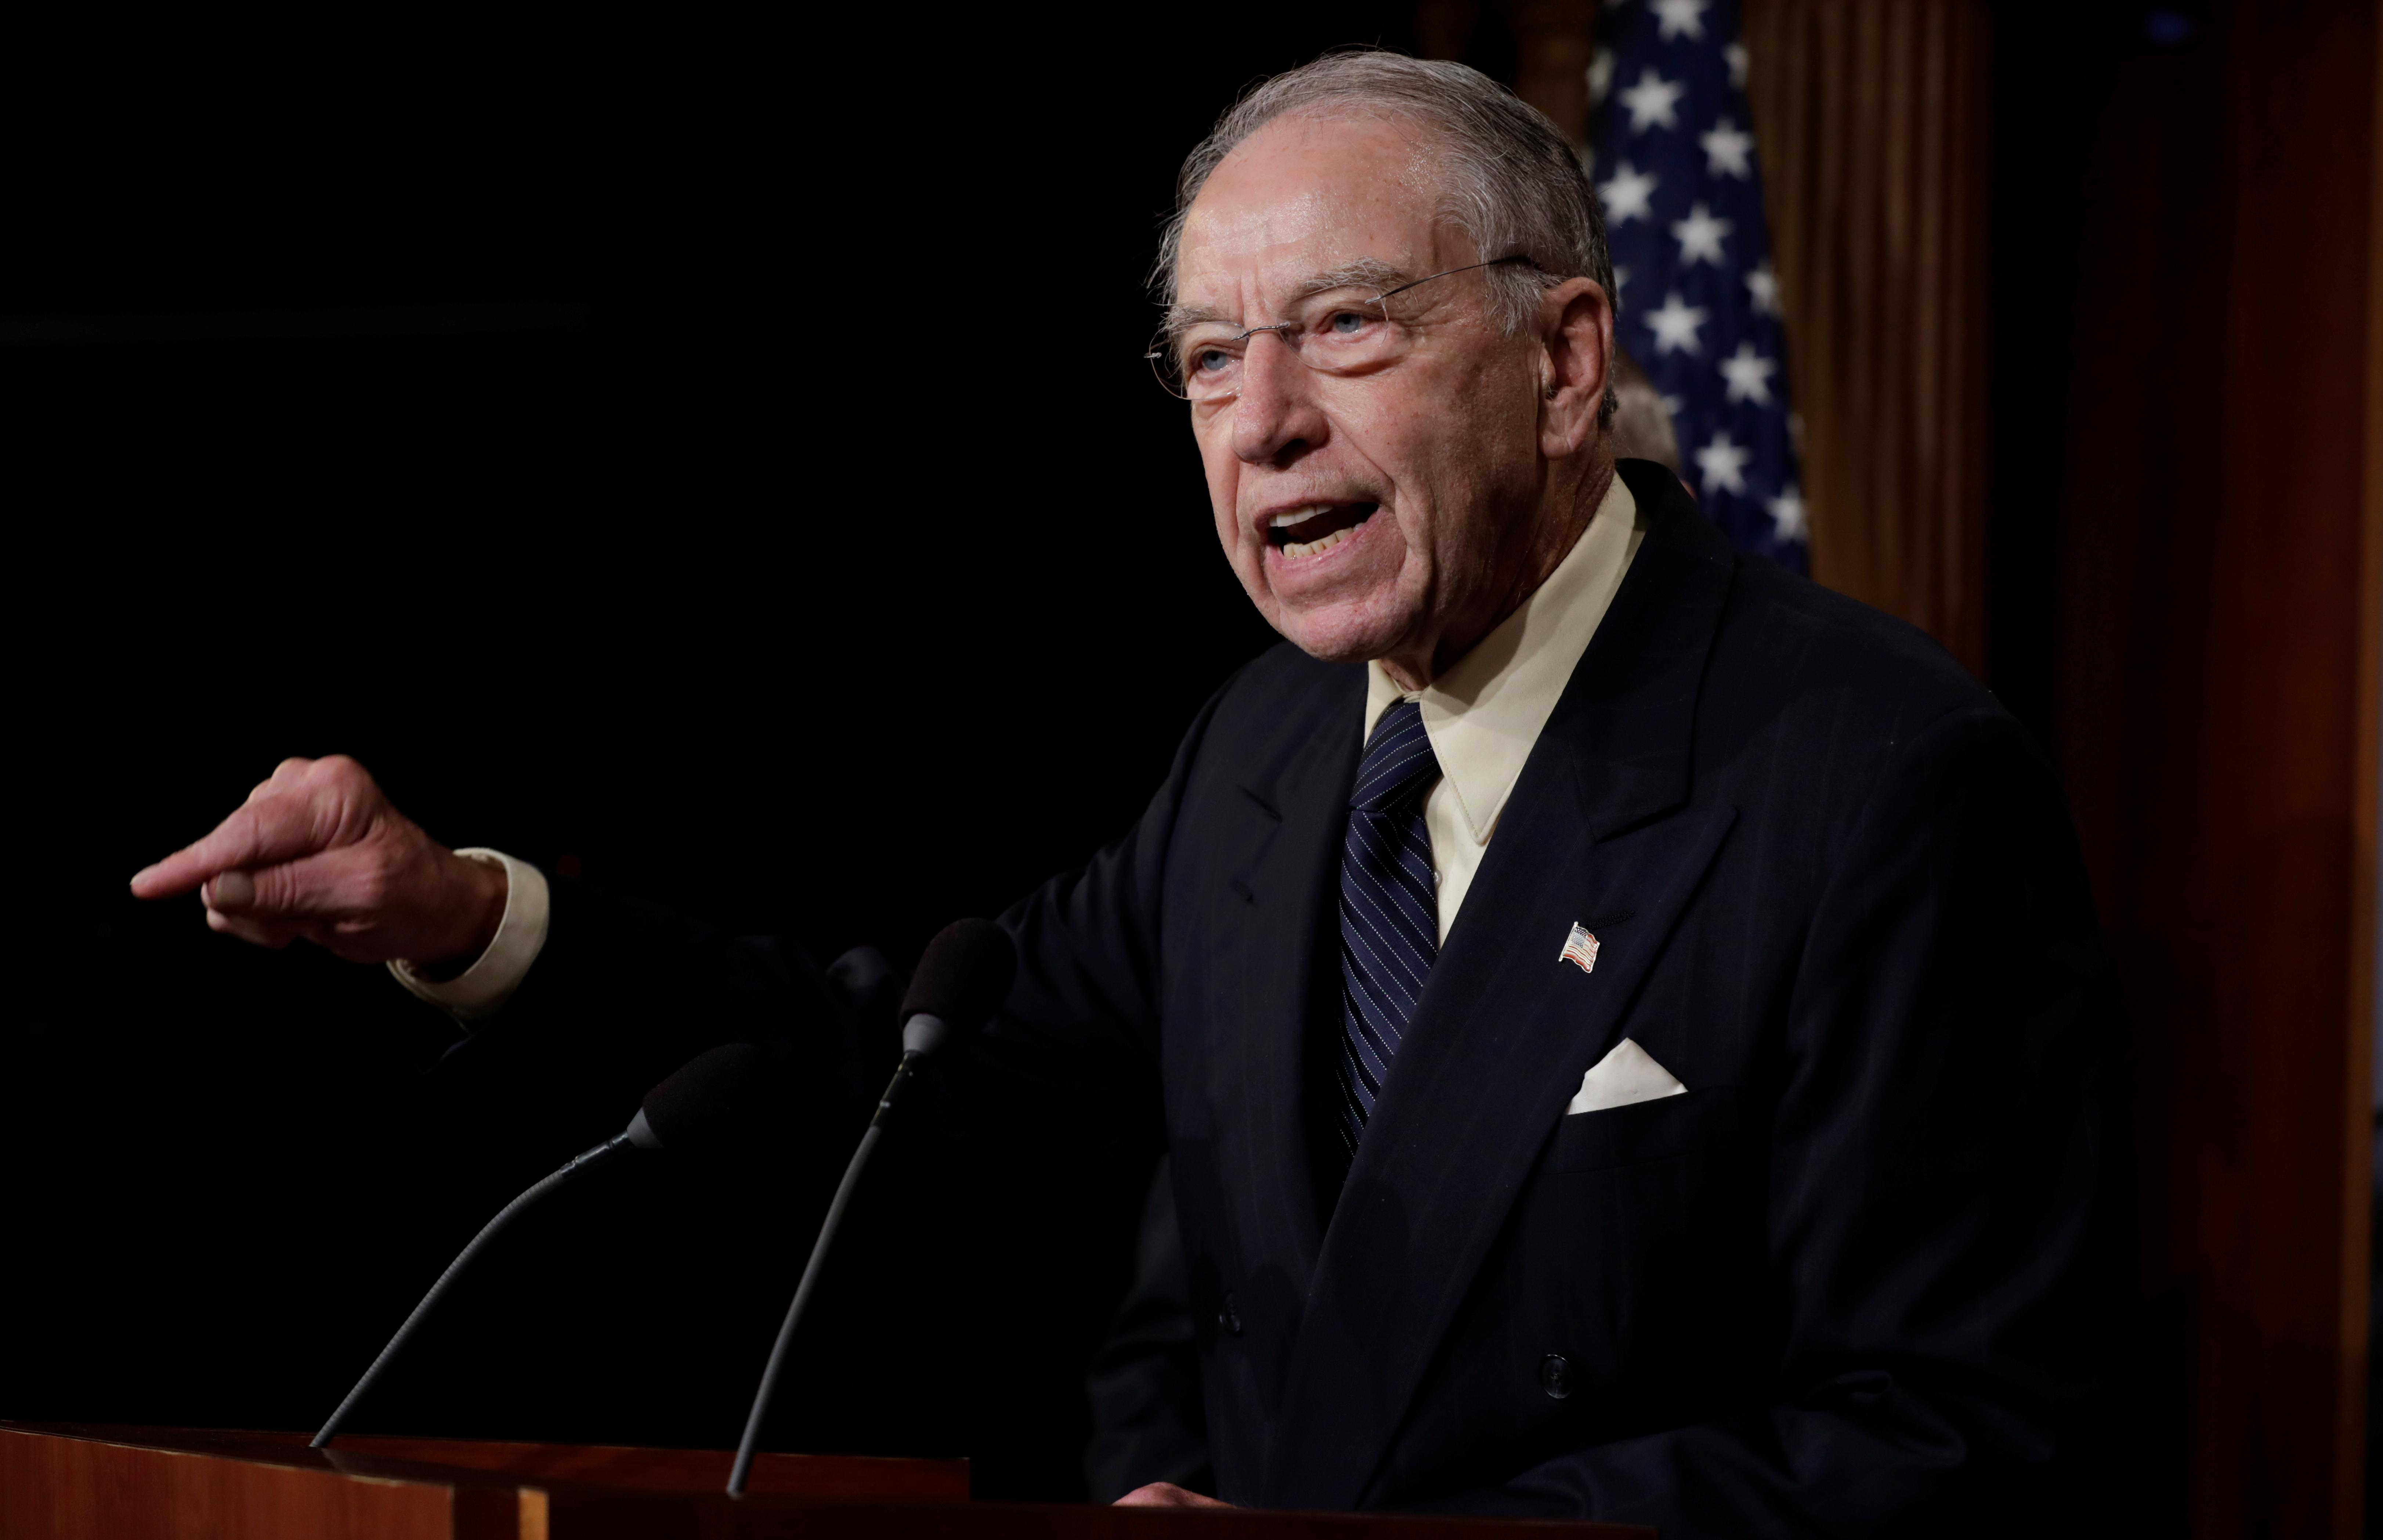 U.S. Senate Judiciary Committee Chairman Senator Chuck Grassley (R-IA) speaks during a news conference to discuss the FBI background investigation into the assault allegations against U.S. Supreme Court nominee Judge Brett Kavanaugh on Capitol Hill in Washington, U.S., October 4, 2018. Yuri Gripas